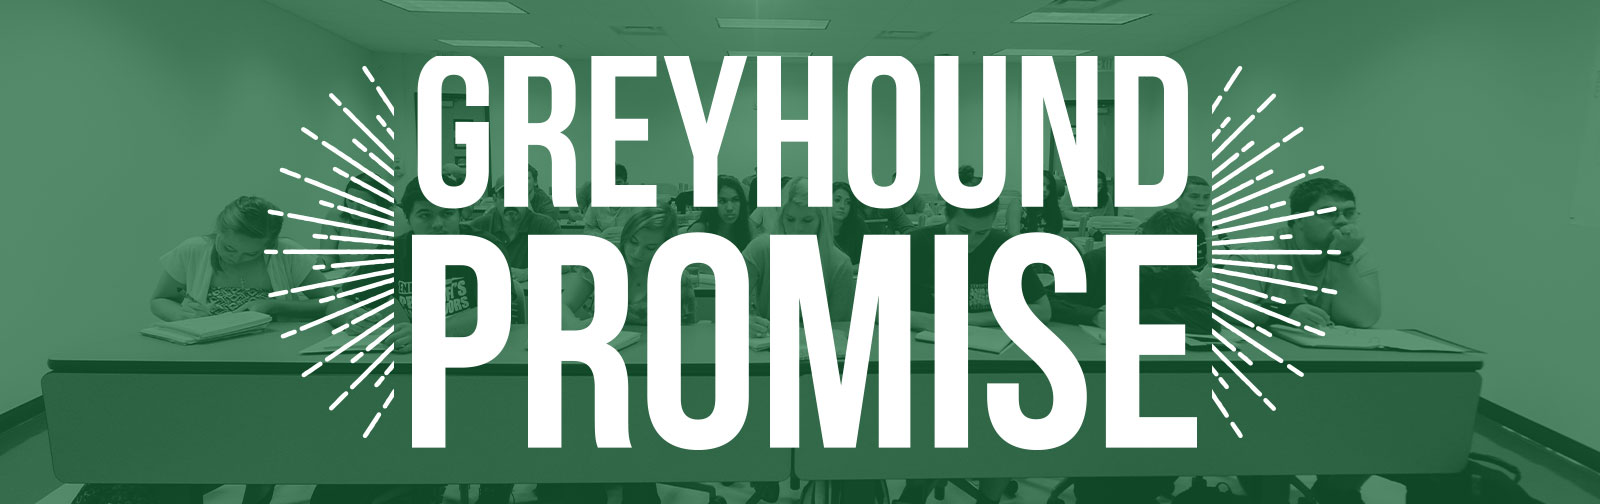 Greyhound Promise Banner